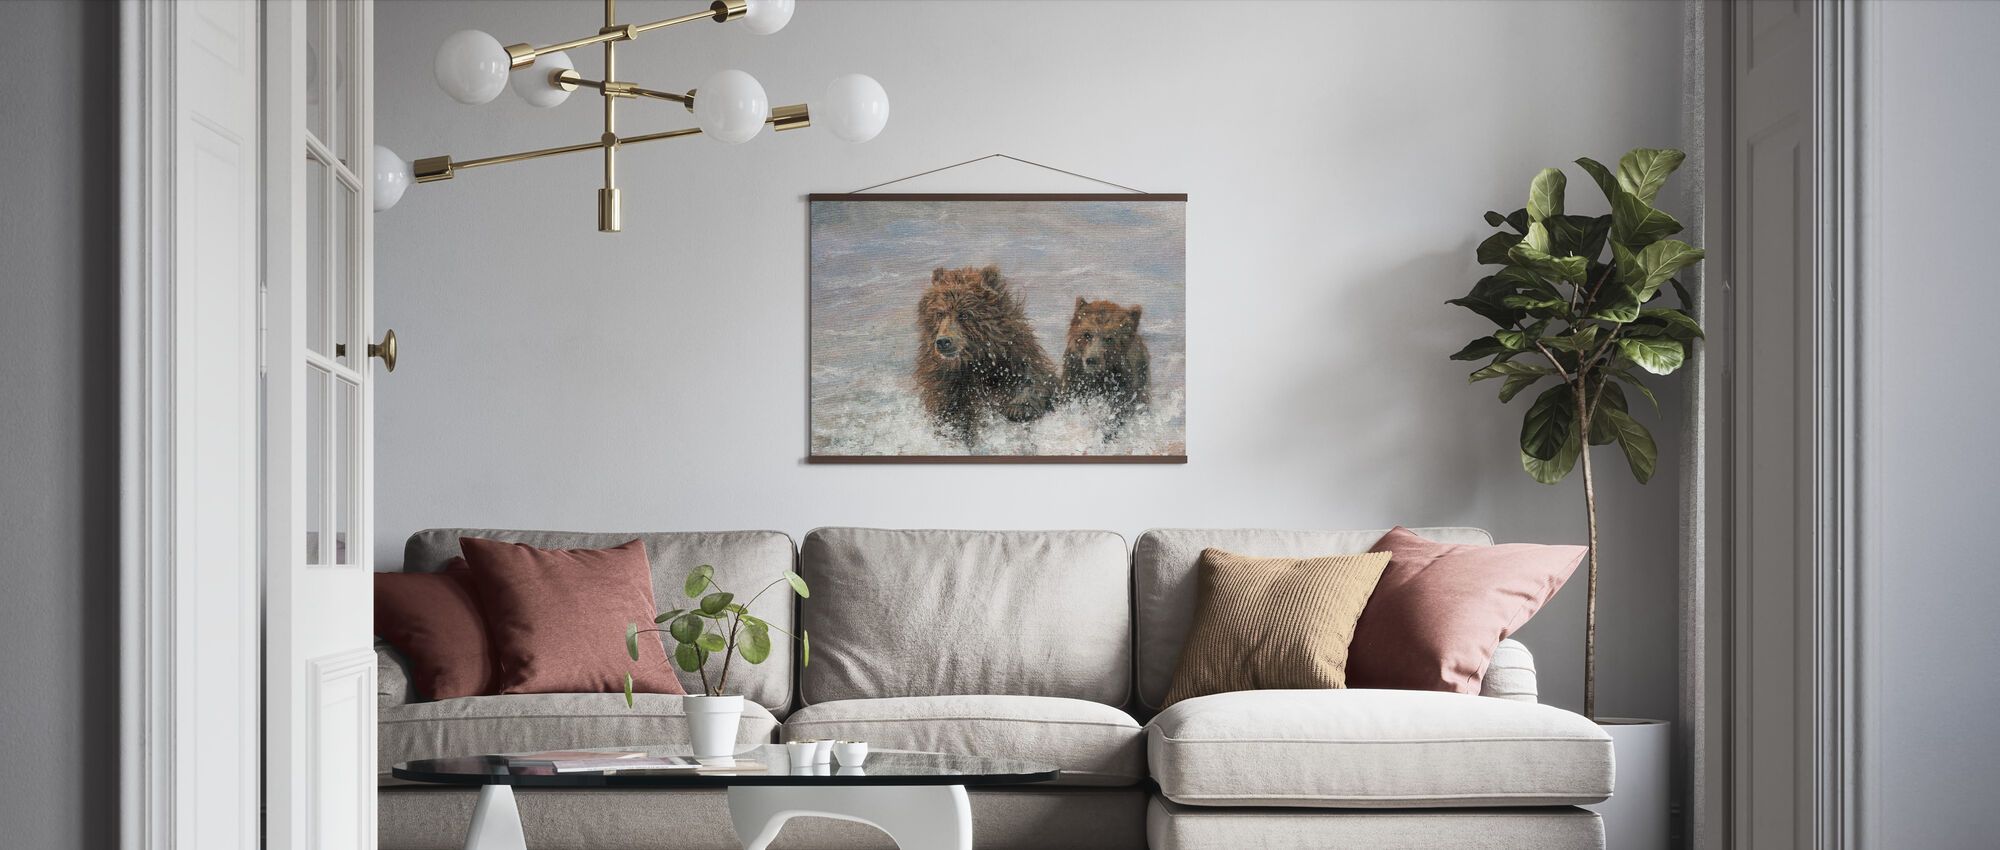 The Bears are Coming - Poster - Living Room